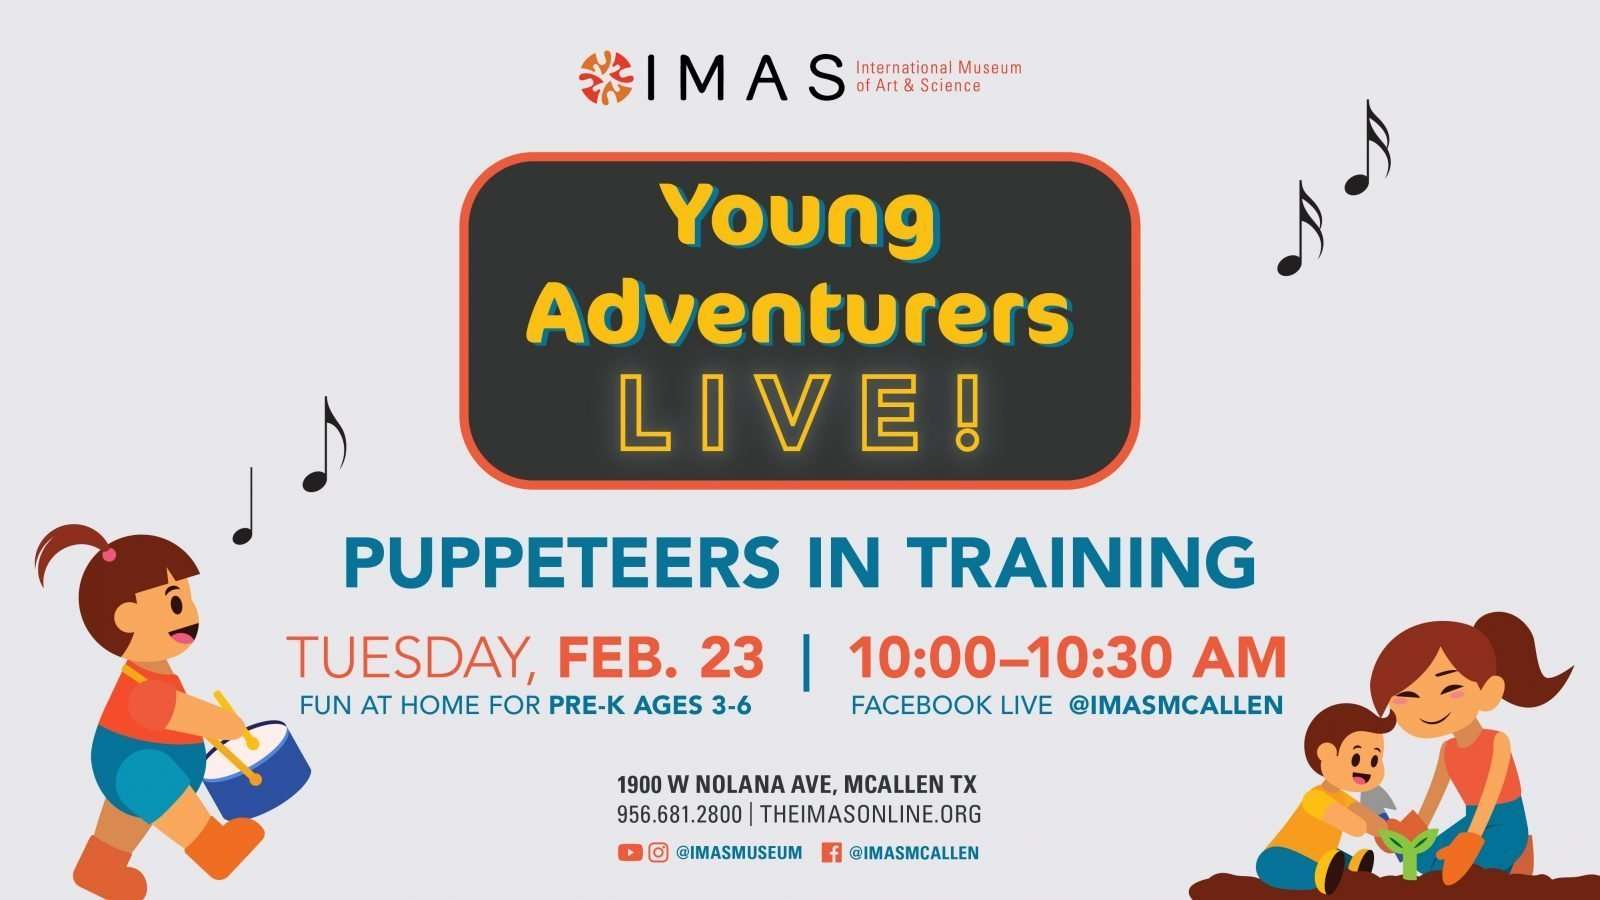 Puppeteers in Training YoungAdventurers fb event